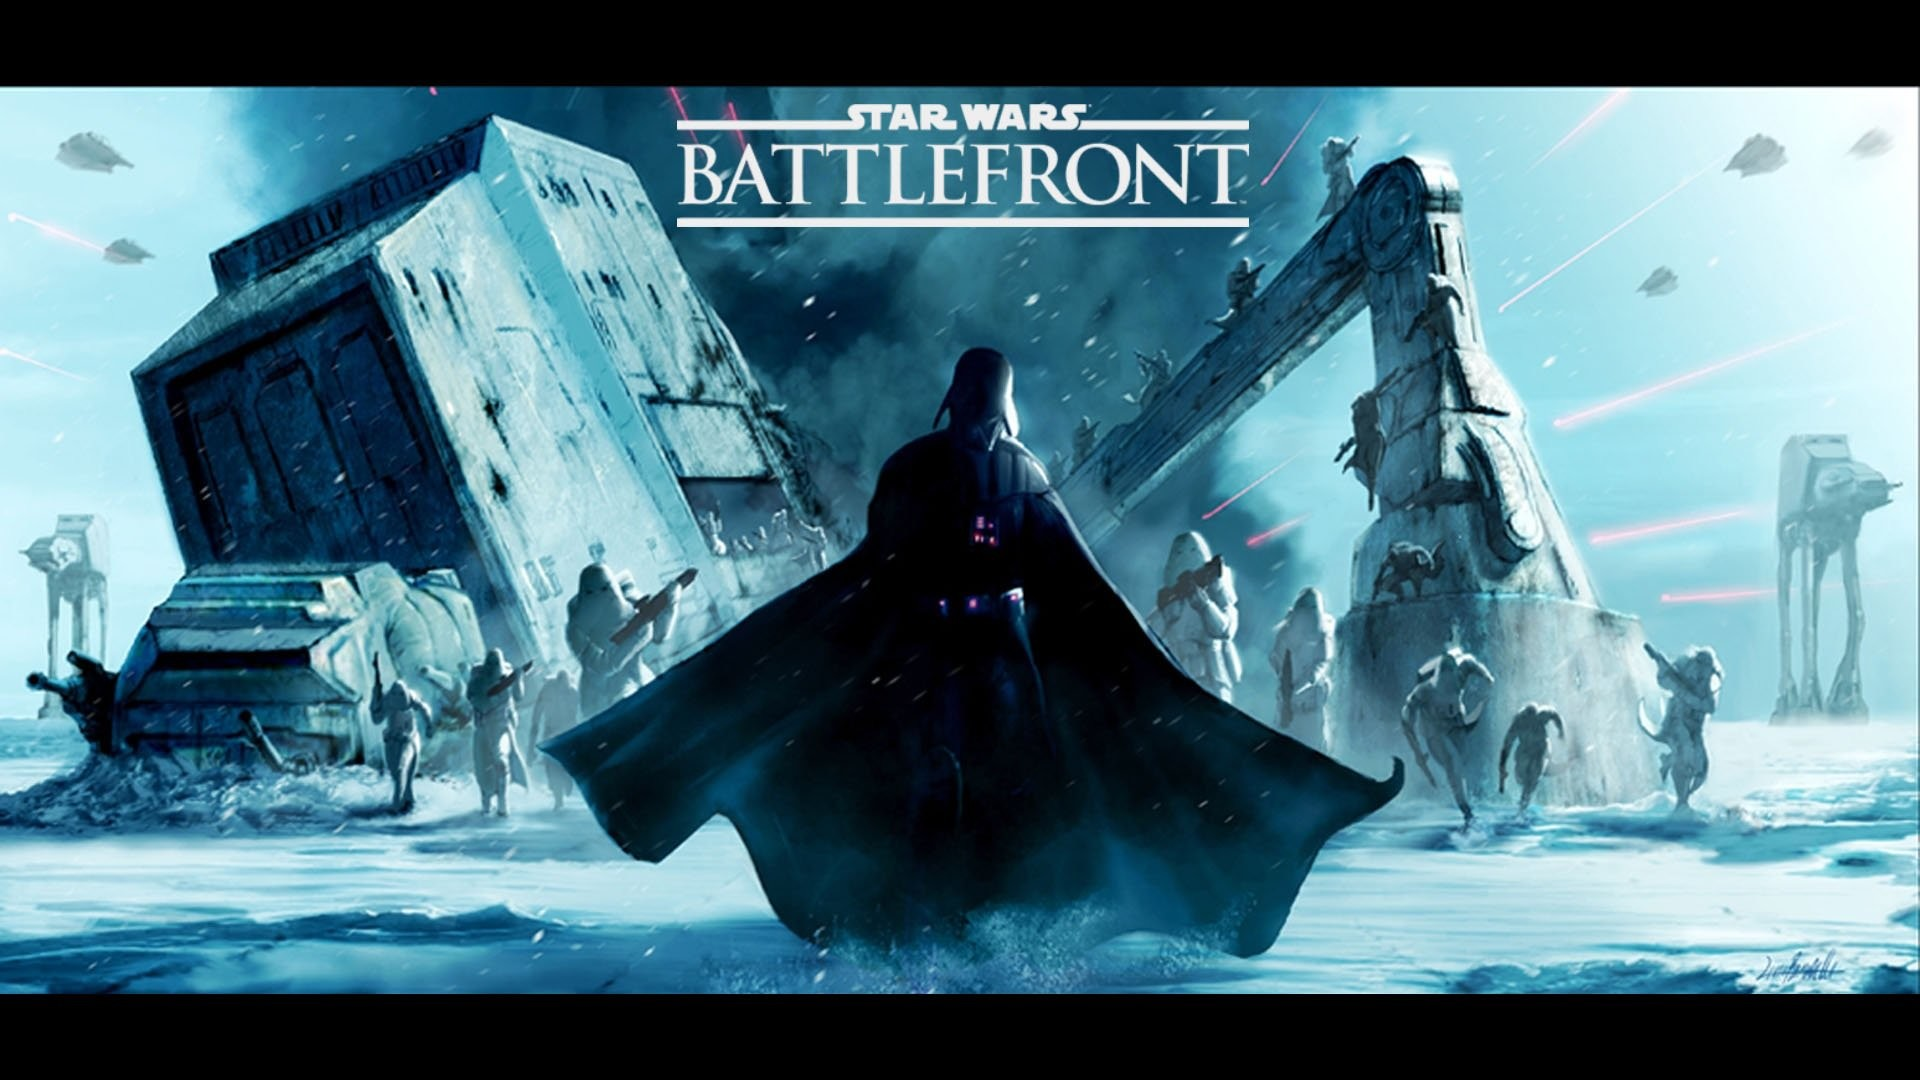 Star Wars Battlefront Wallpapers Wallpapertag